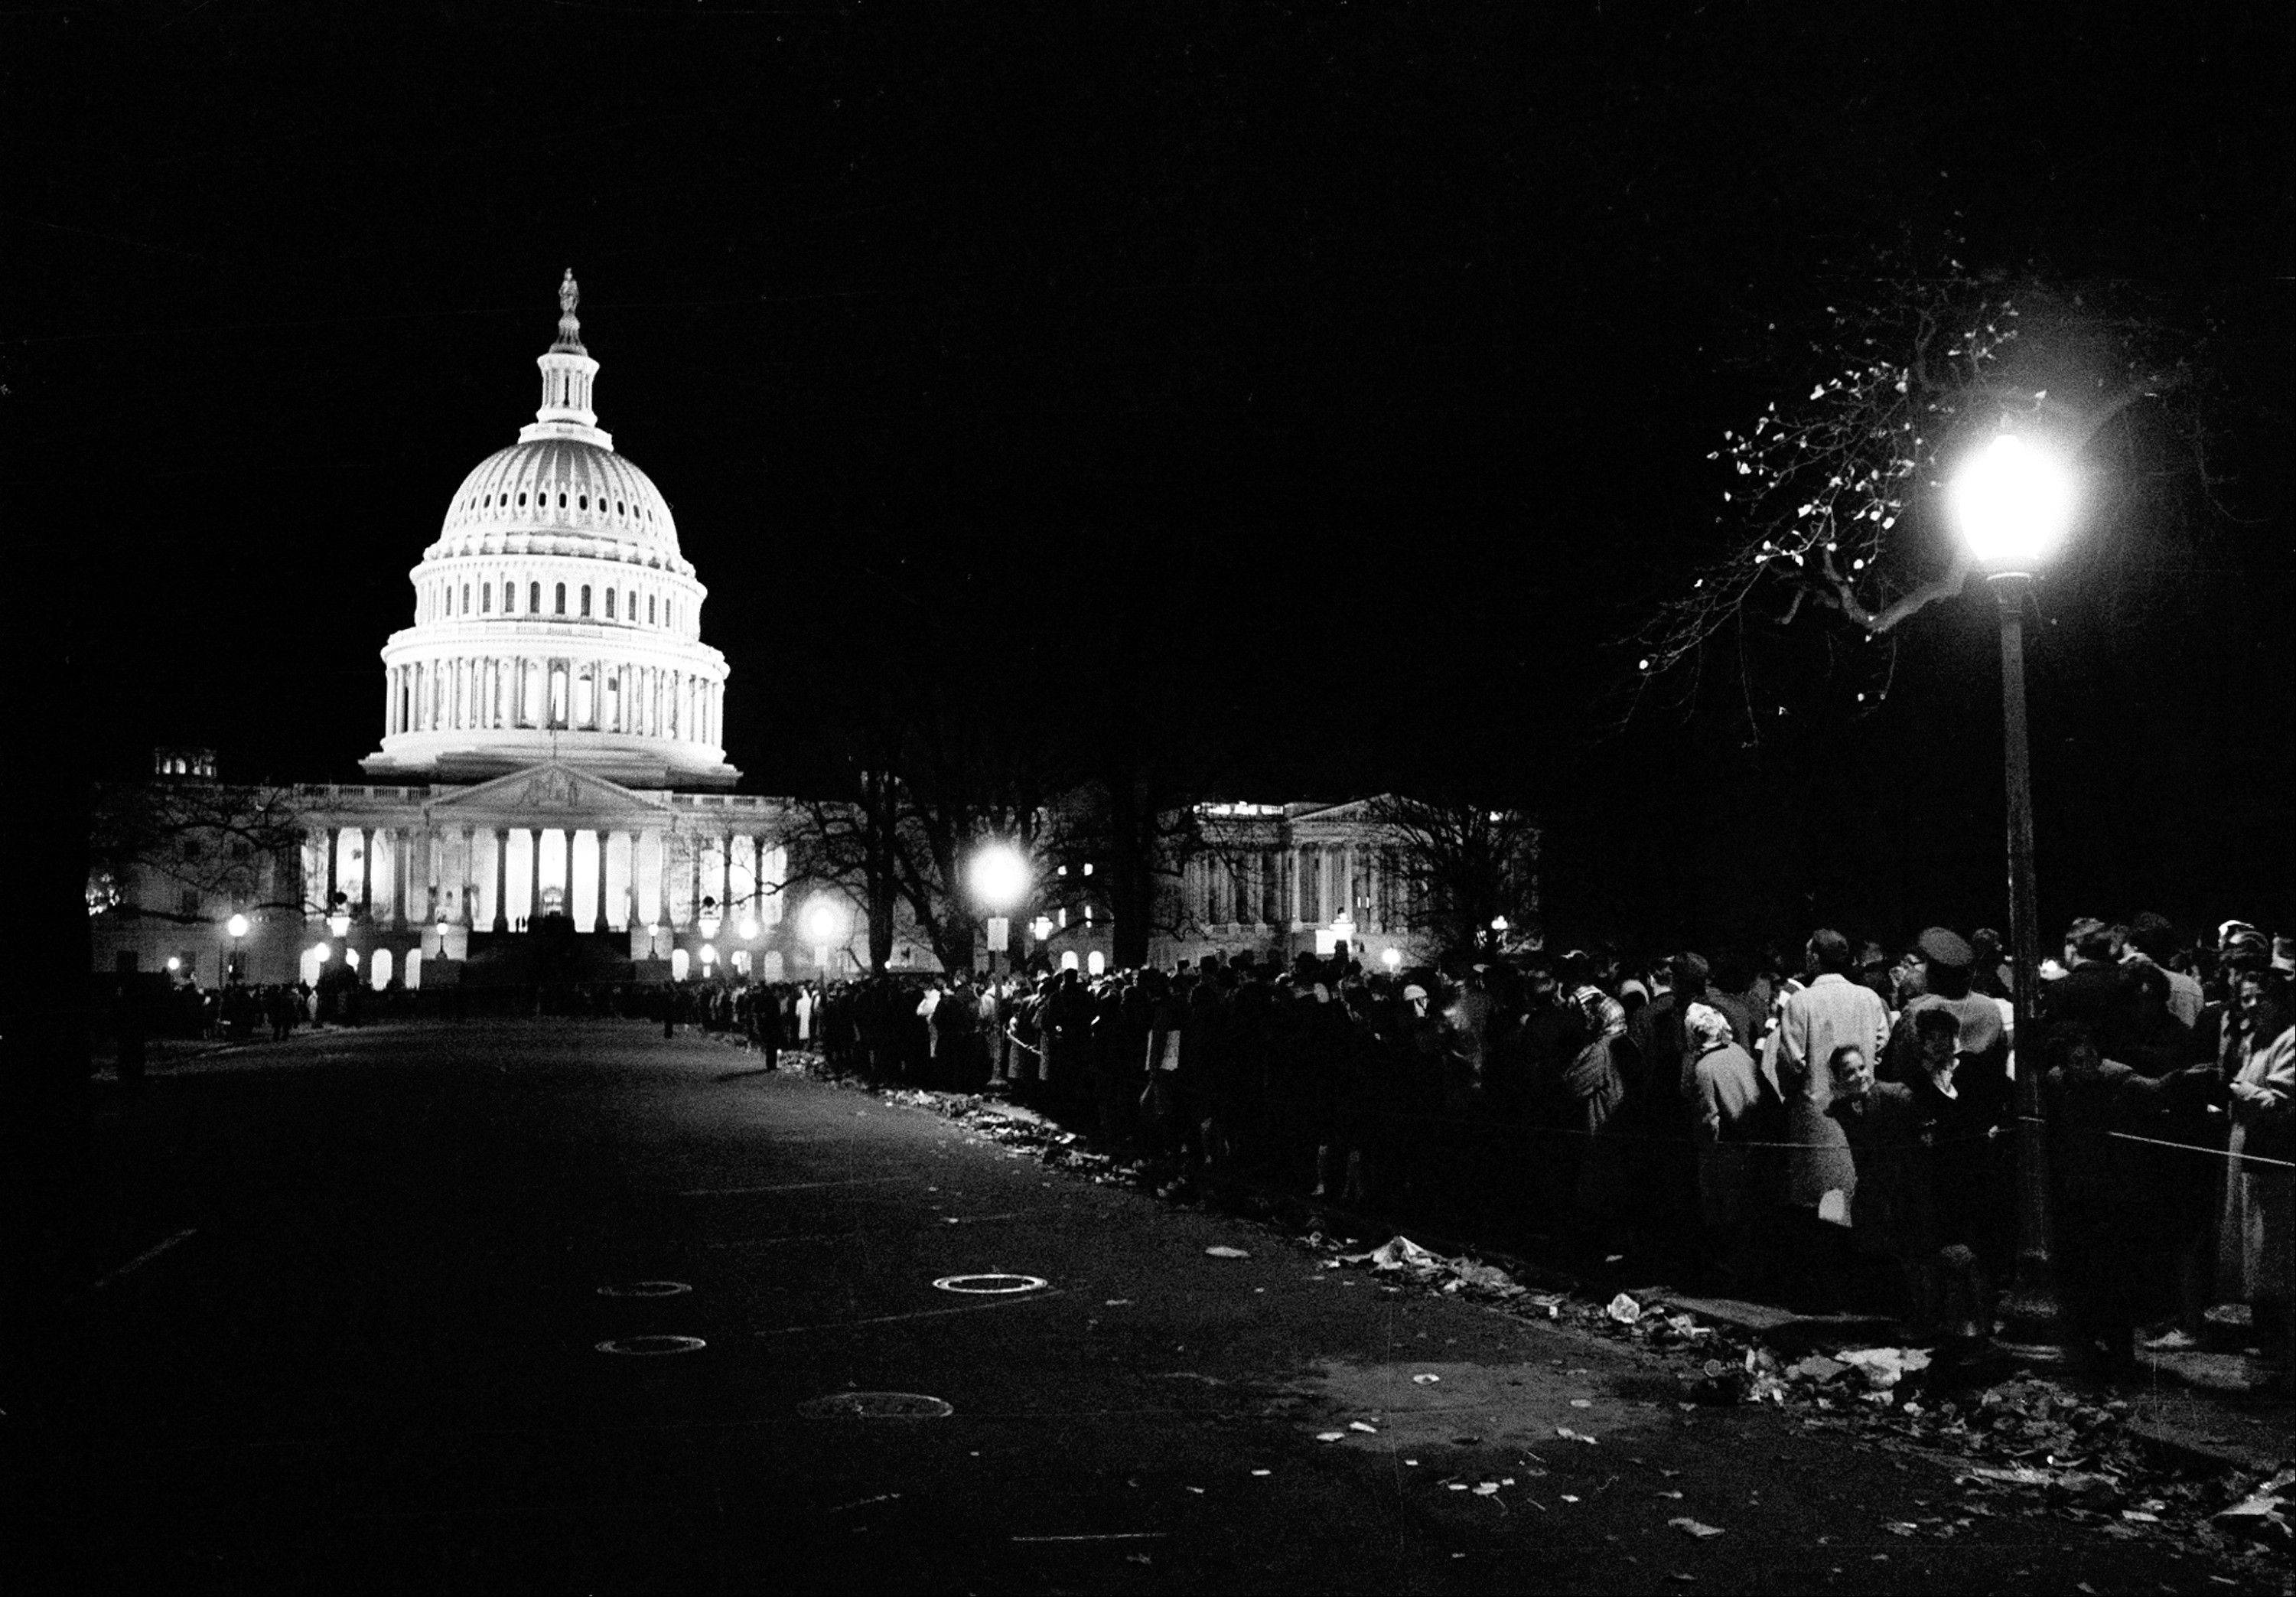 Mourners stand in a line which lasted through the night, to pay their respects to the slain President John F. Kennedy, in Washington, with the illuminated U.S. Capitol in the background.